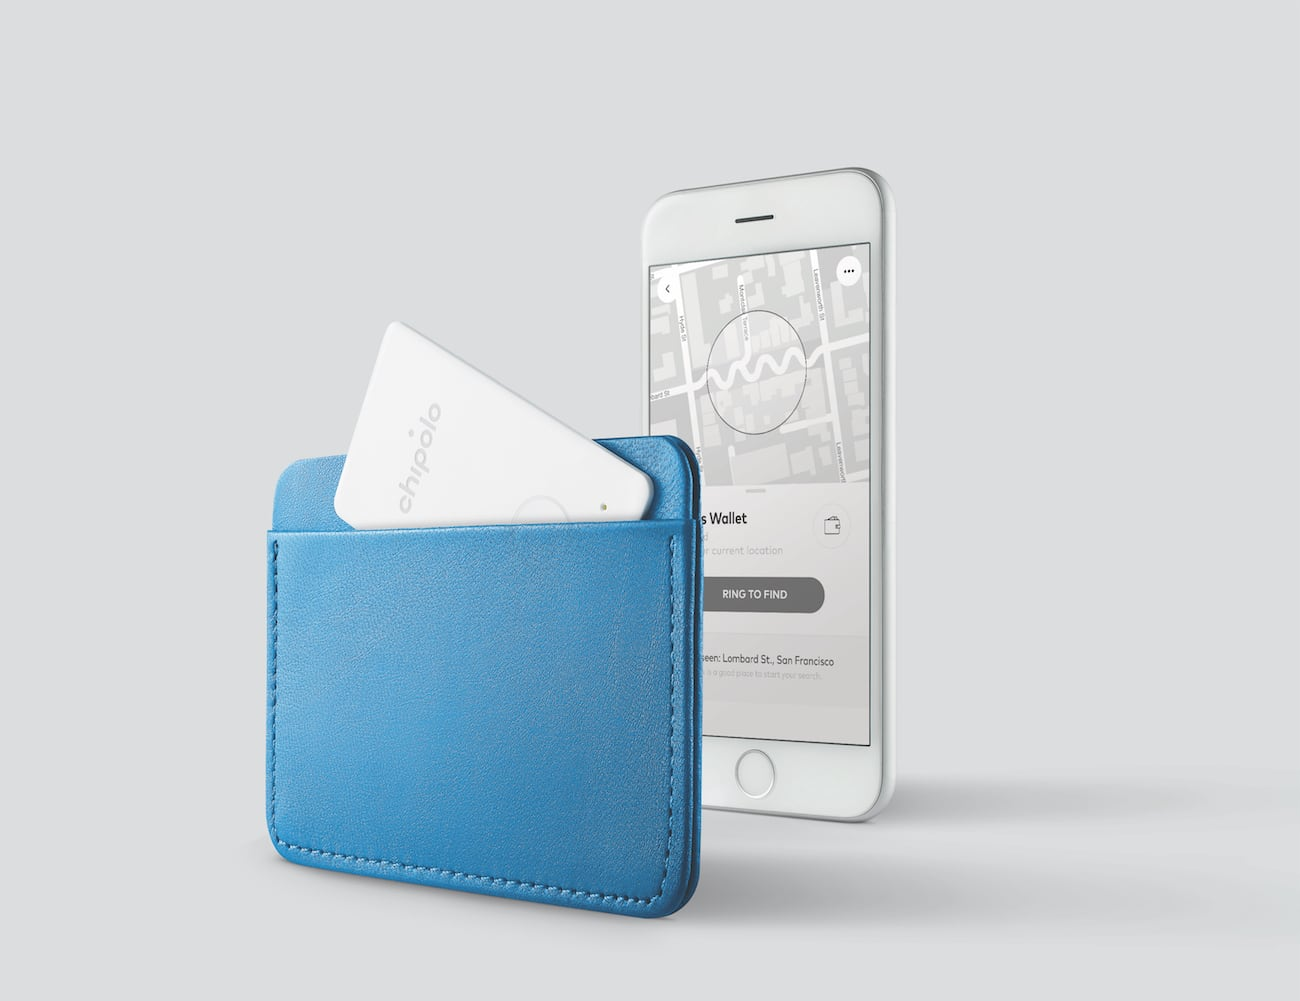 Wallet With Tracking Chip Sema Data Co Op